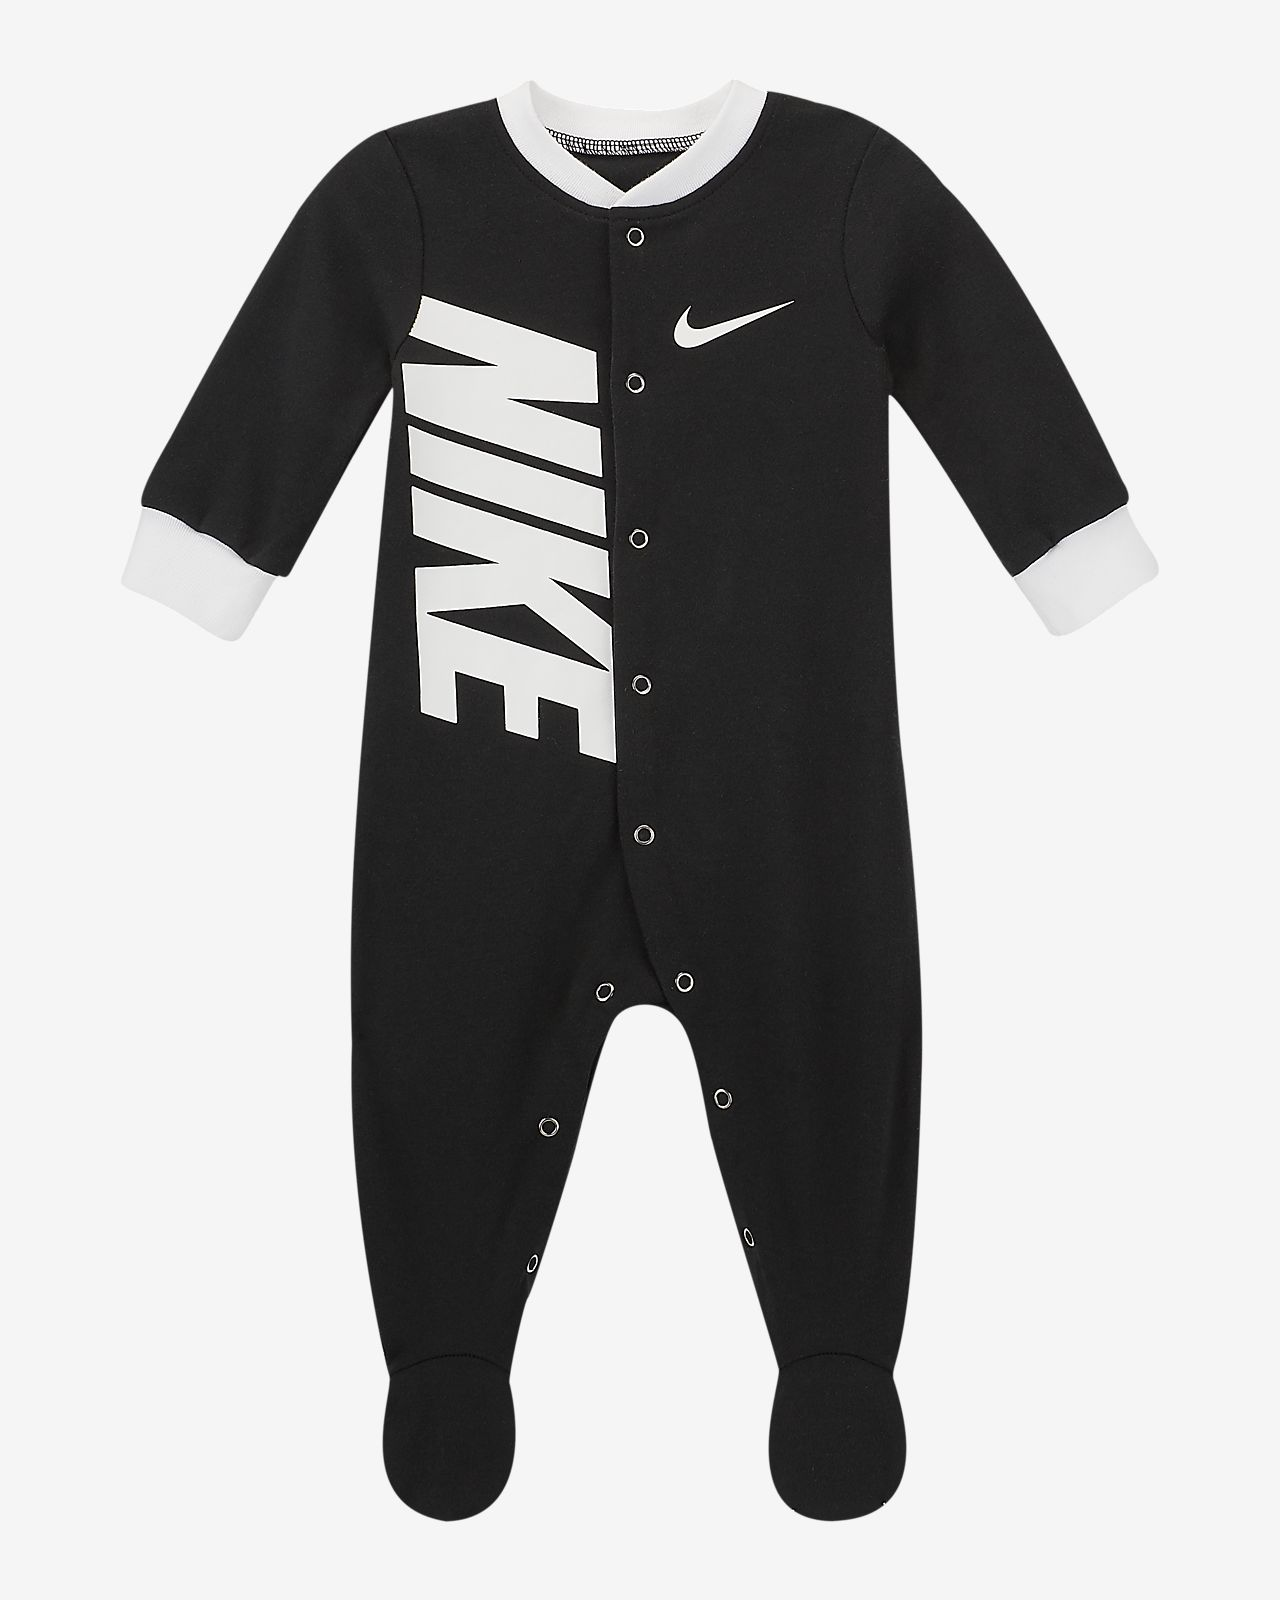 4052ff1c4 Nike Baby (0-9M) Footed Coverall. Nike.com